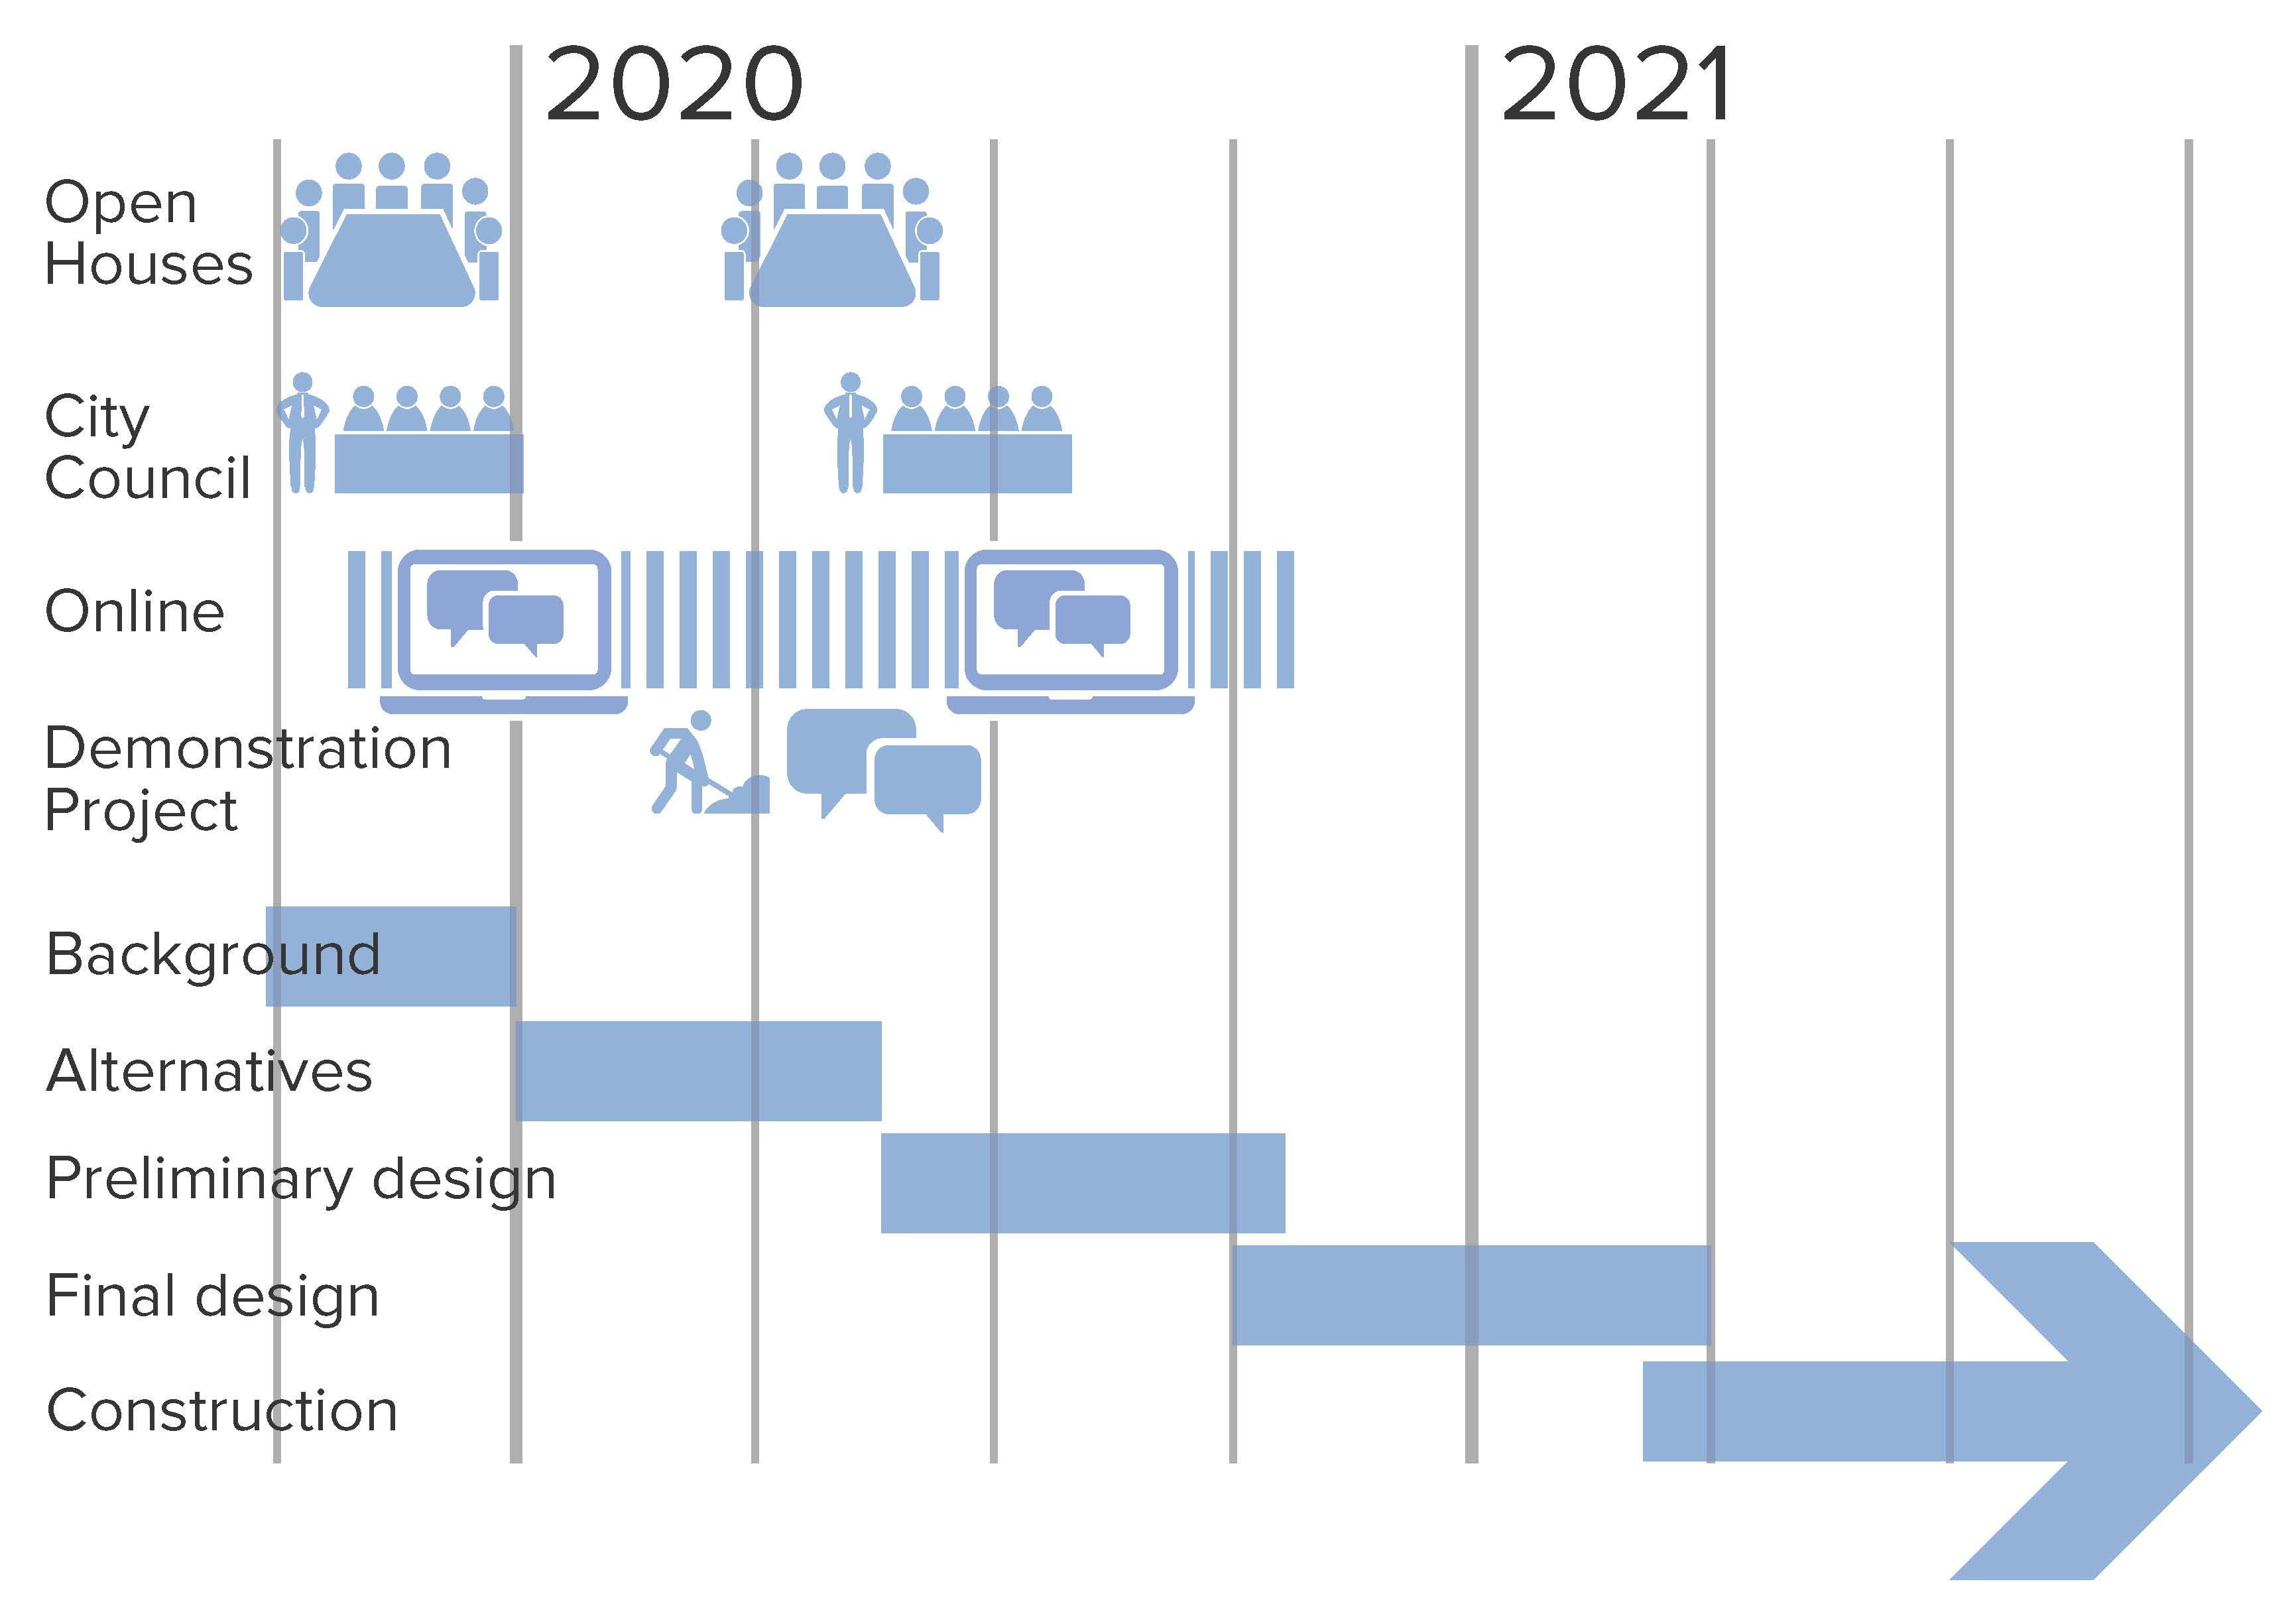 Timeline graphic